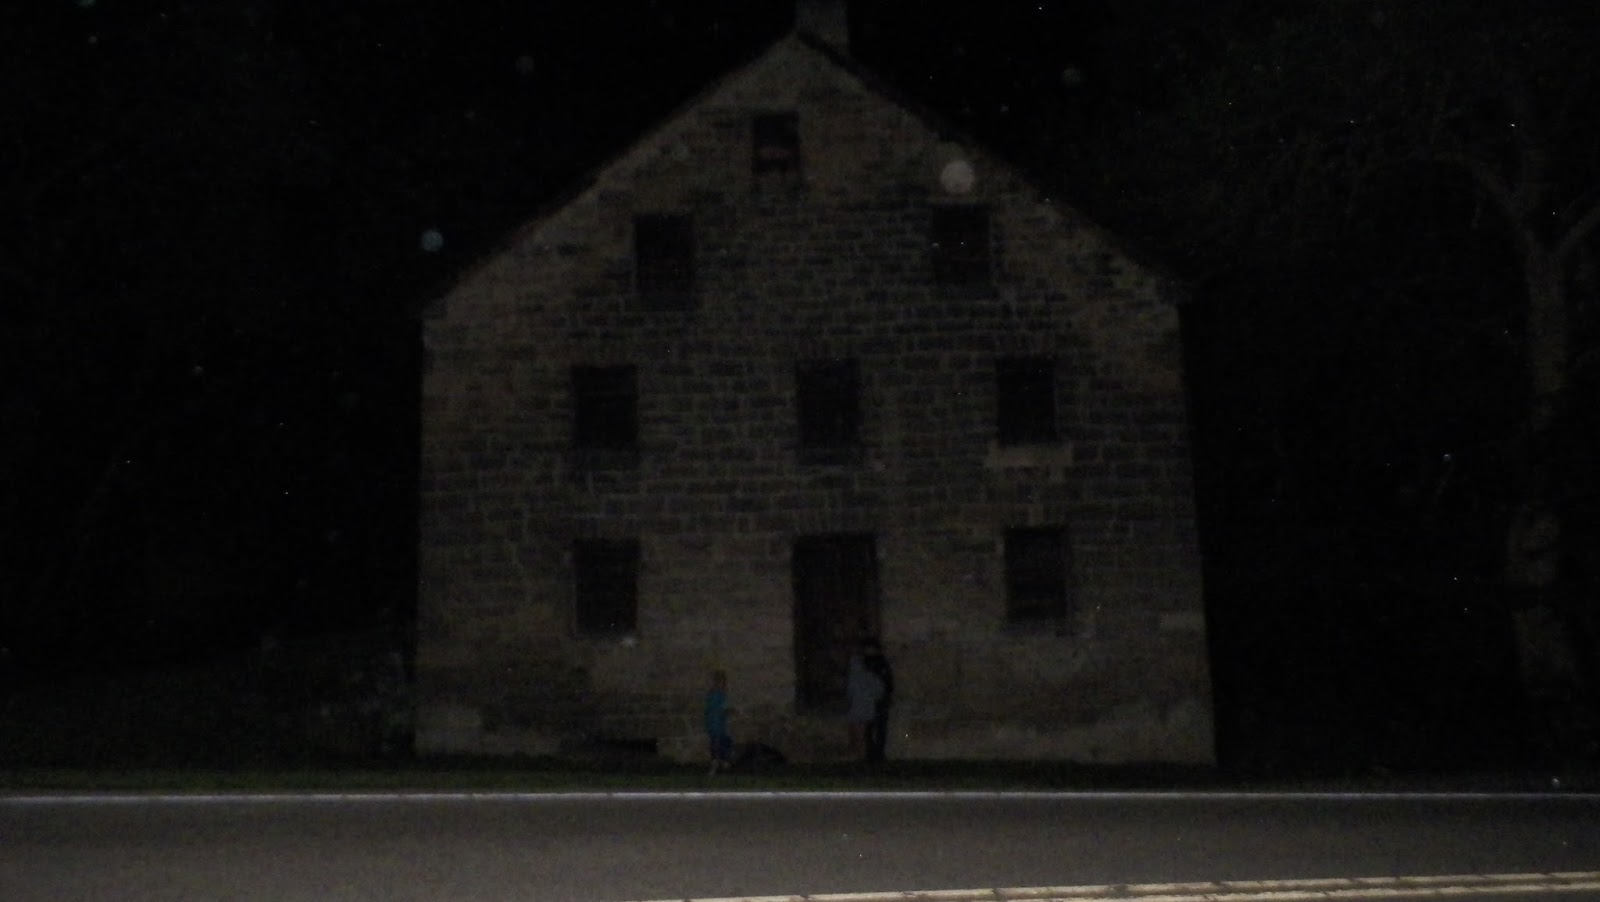 Ohio columbiana county rogers - What Is The Most Haunted Location In Columbiana County